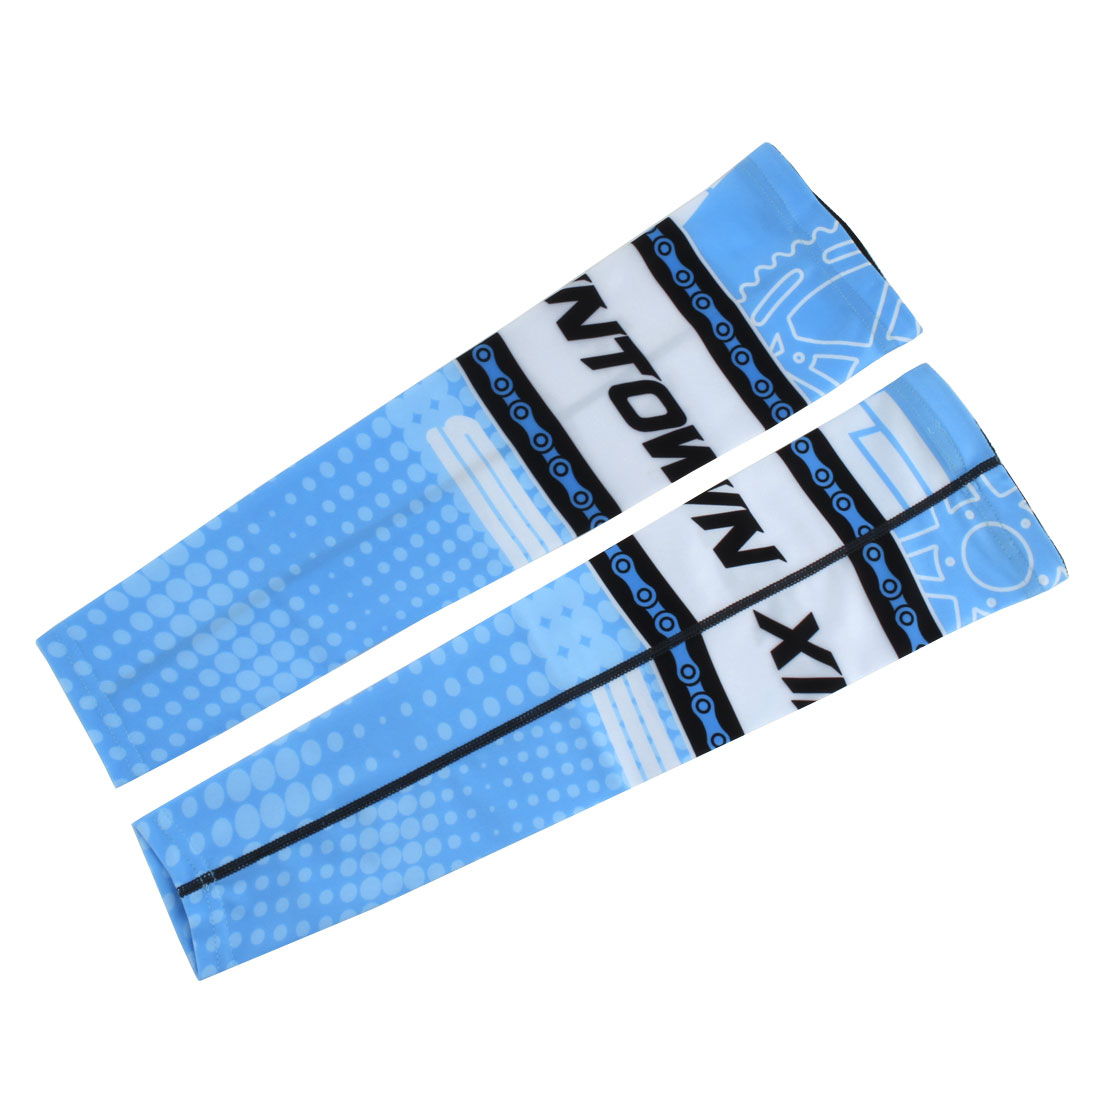 XINTOWN Authorized Unisex Cycling Baseball Arm Sleeves Cover Warmer #3 L Pair by Unique-Bargains